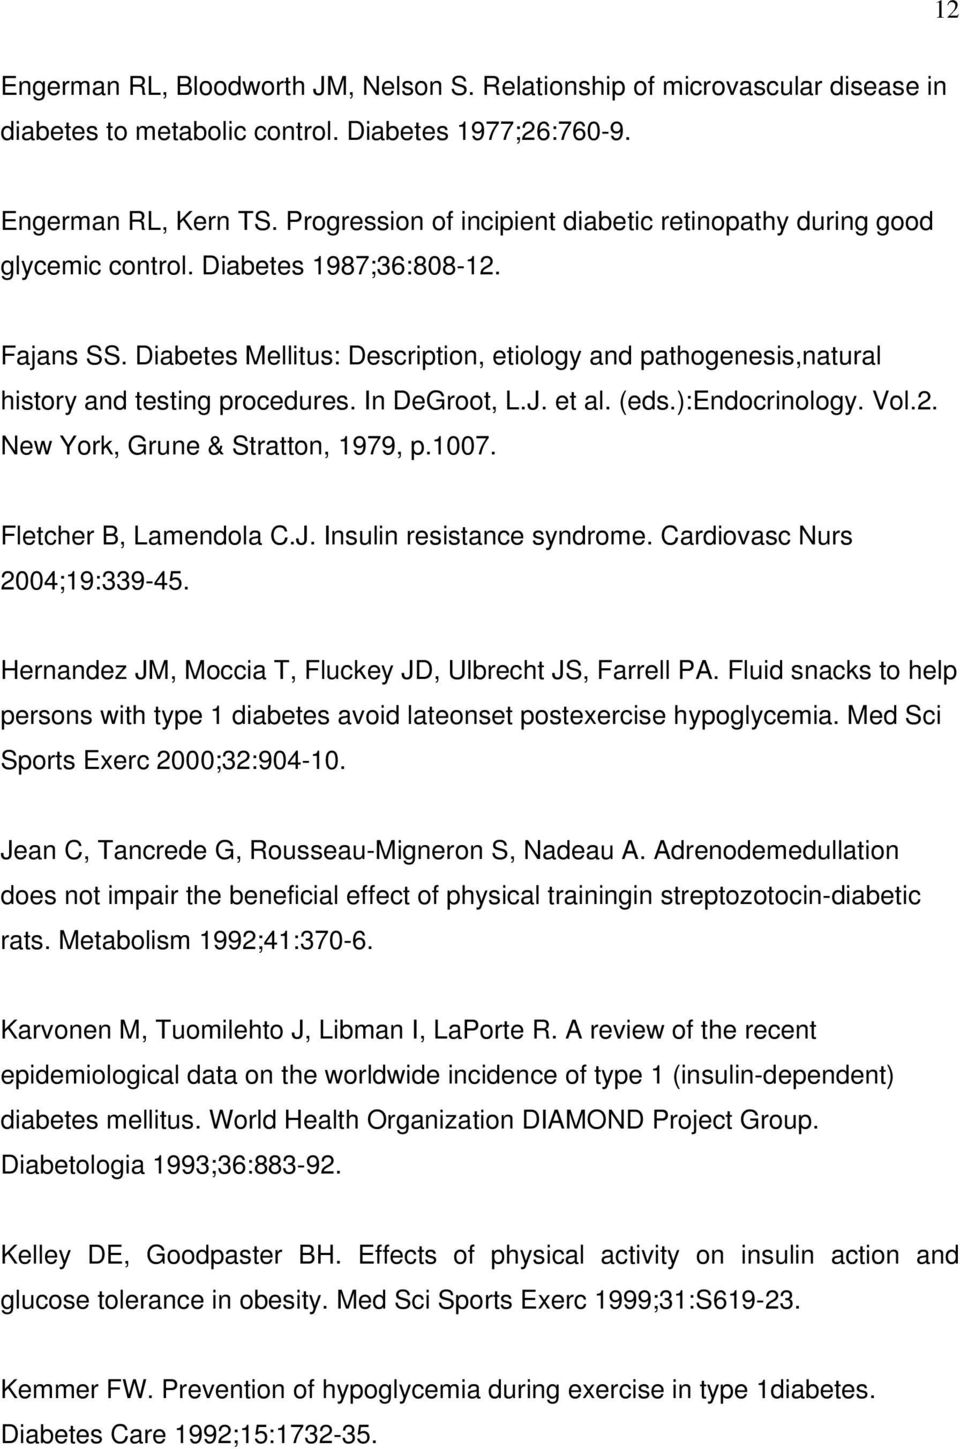 Diabetes Mellitus: Description, etiology and pathogenesis,natural history and testing procedures. In DeGroot, L.J. et al. (eds.):endocrinology. Vol.2. New York, Grune & Stratton, 1979, p.1007.